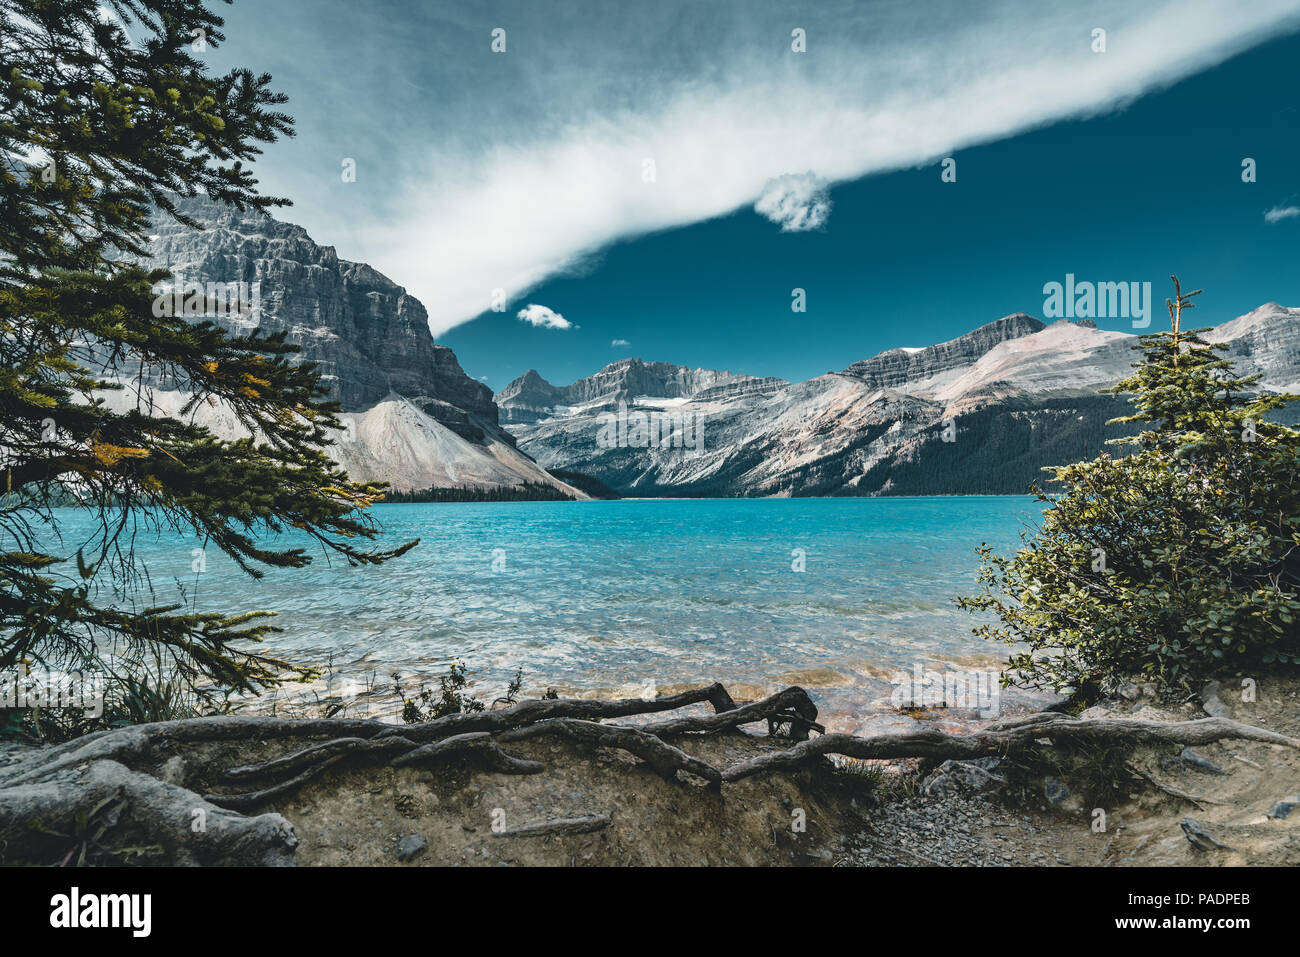 View over Bow Lake, Banff National Park Canada - Stock Image